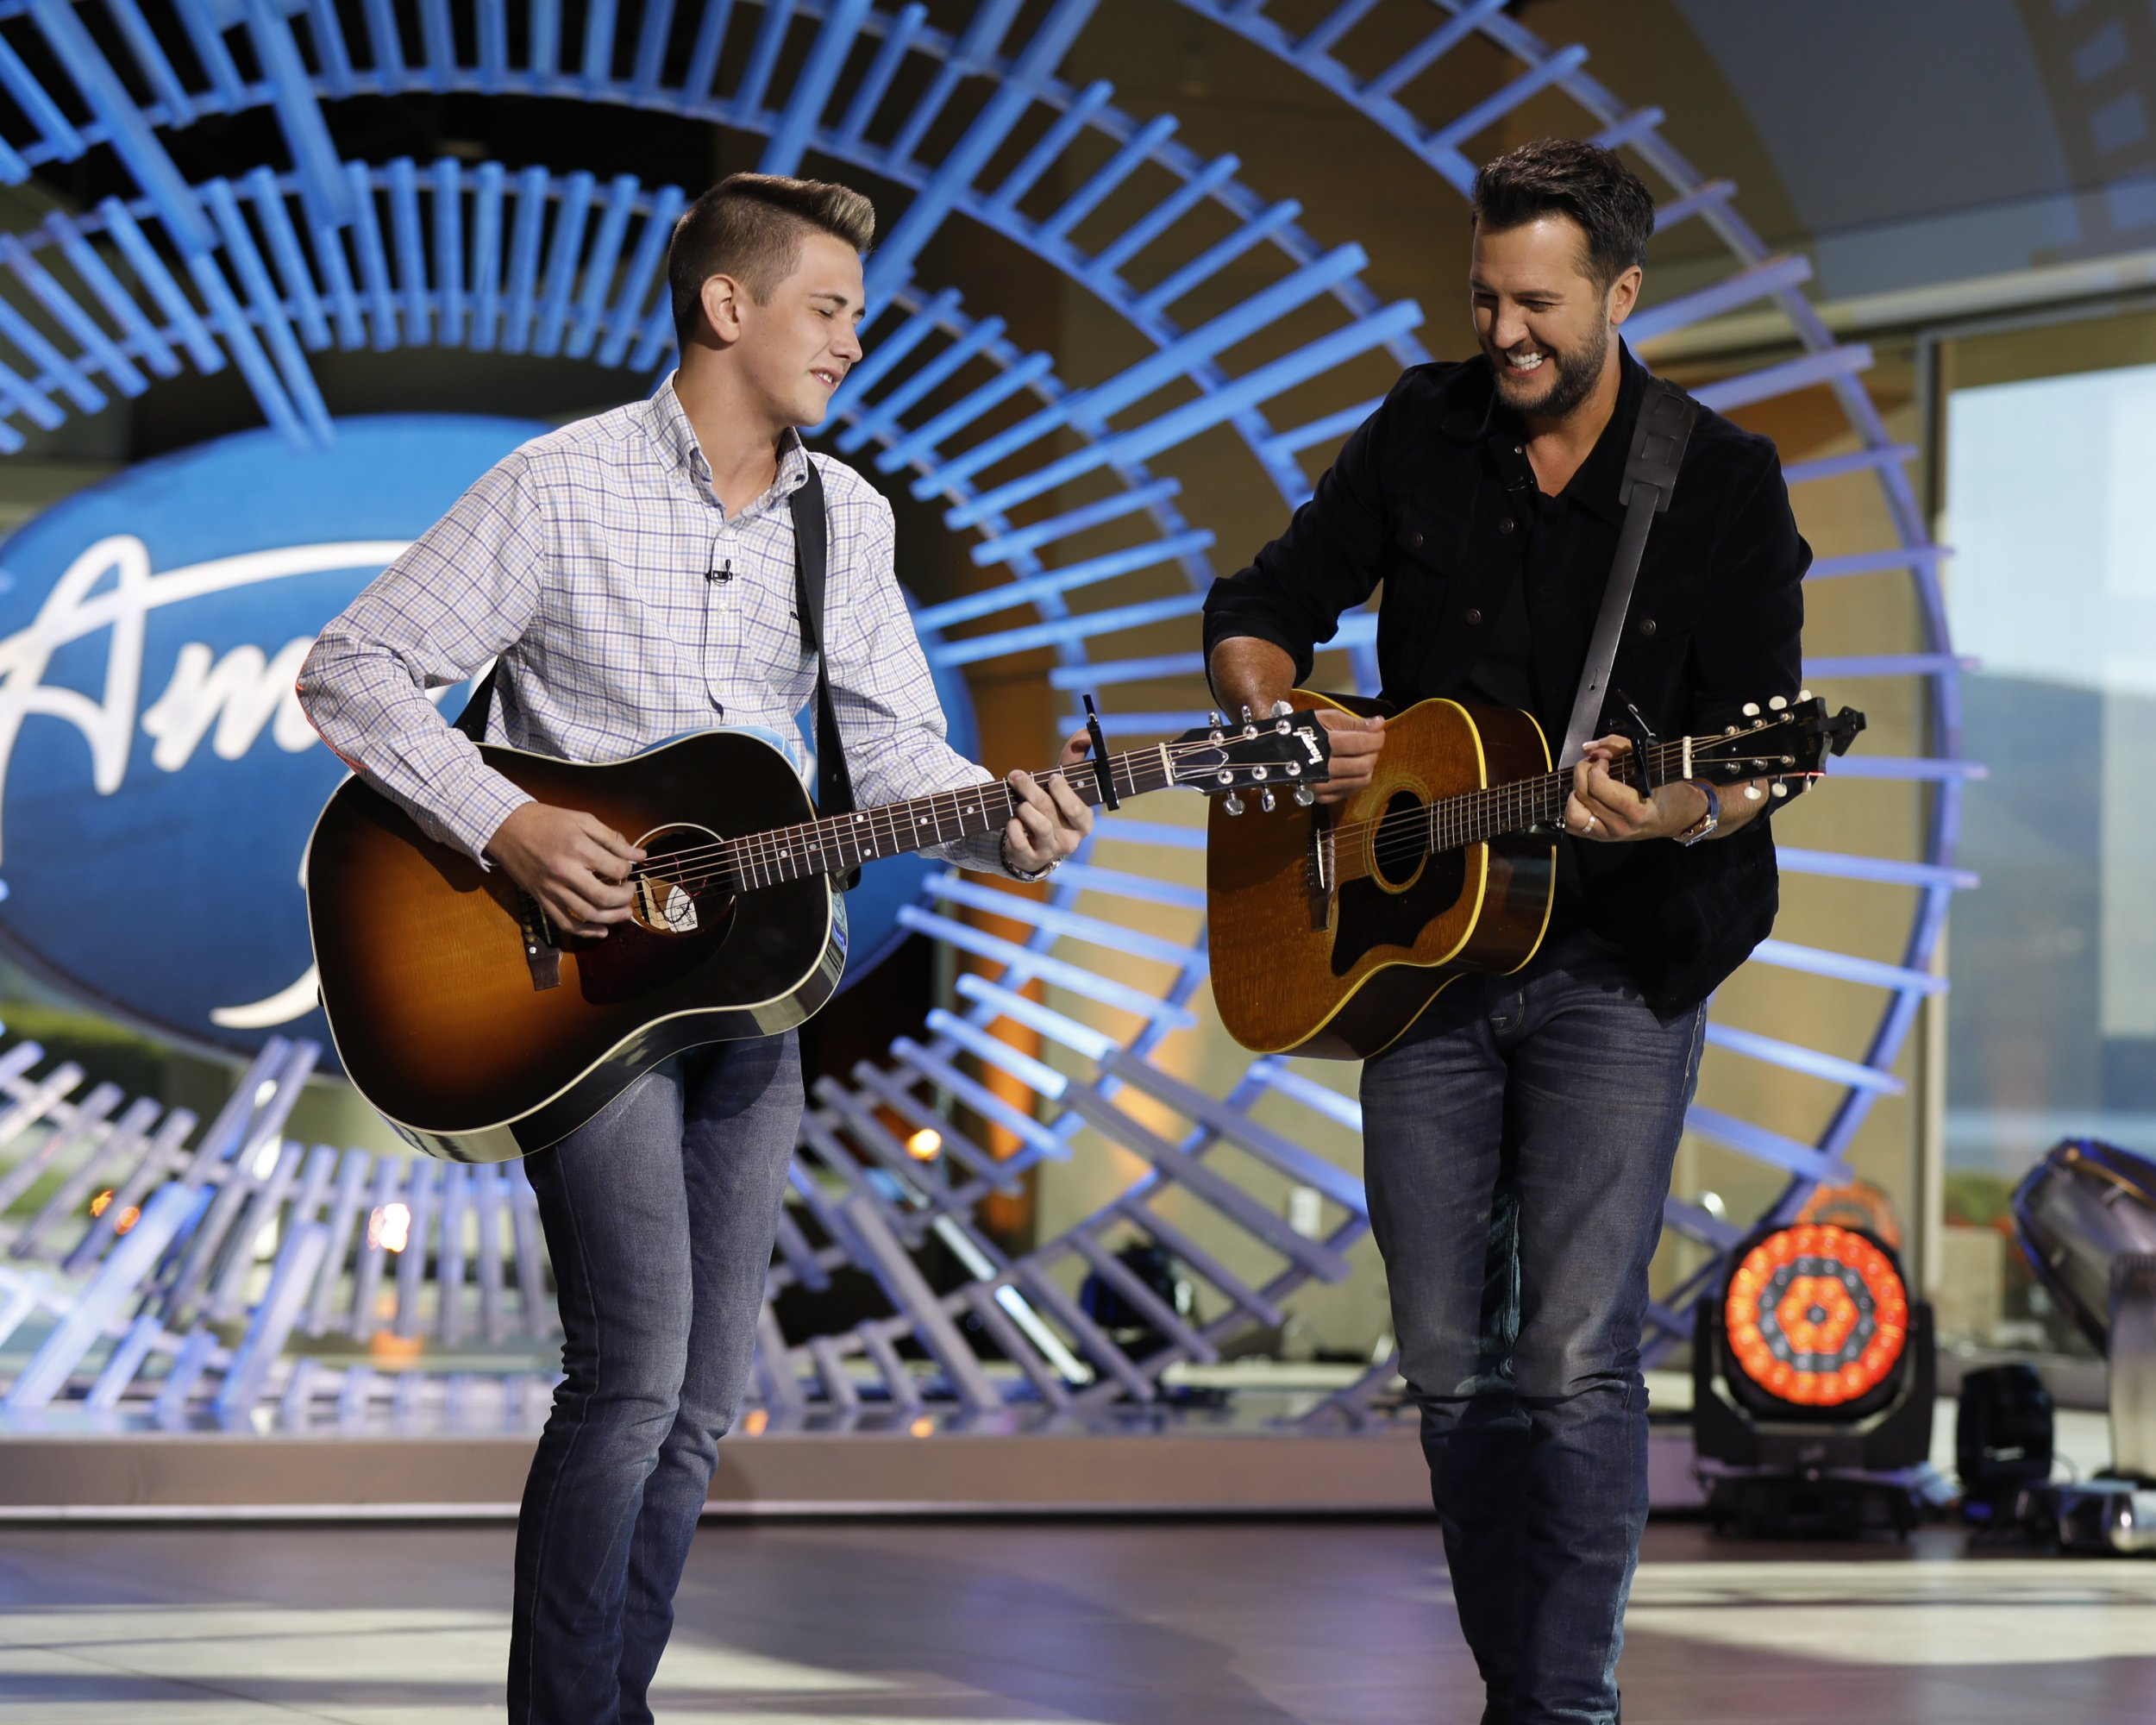 Luke Bryan & Ethan Payne During Round 2 of 'American Idol'